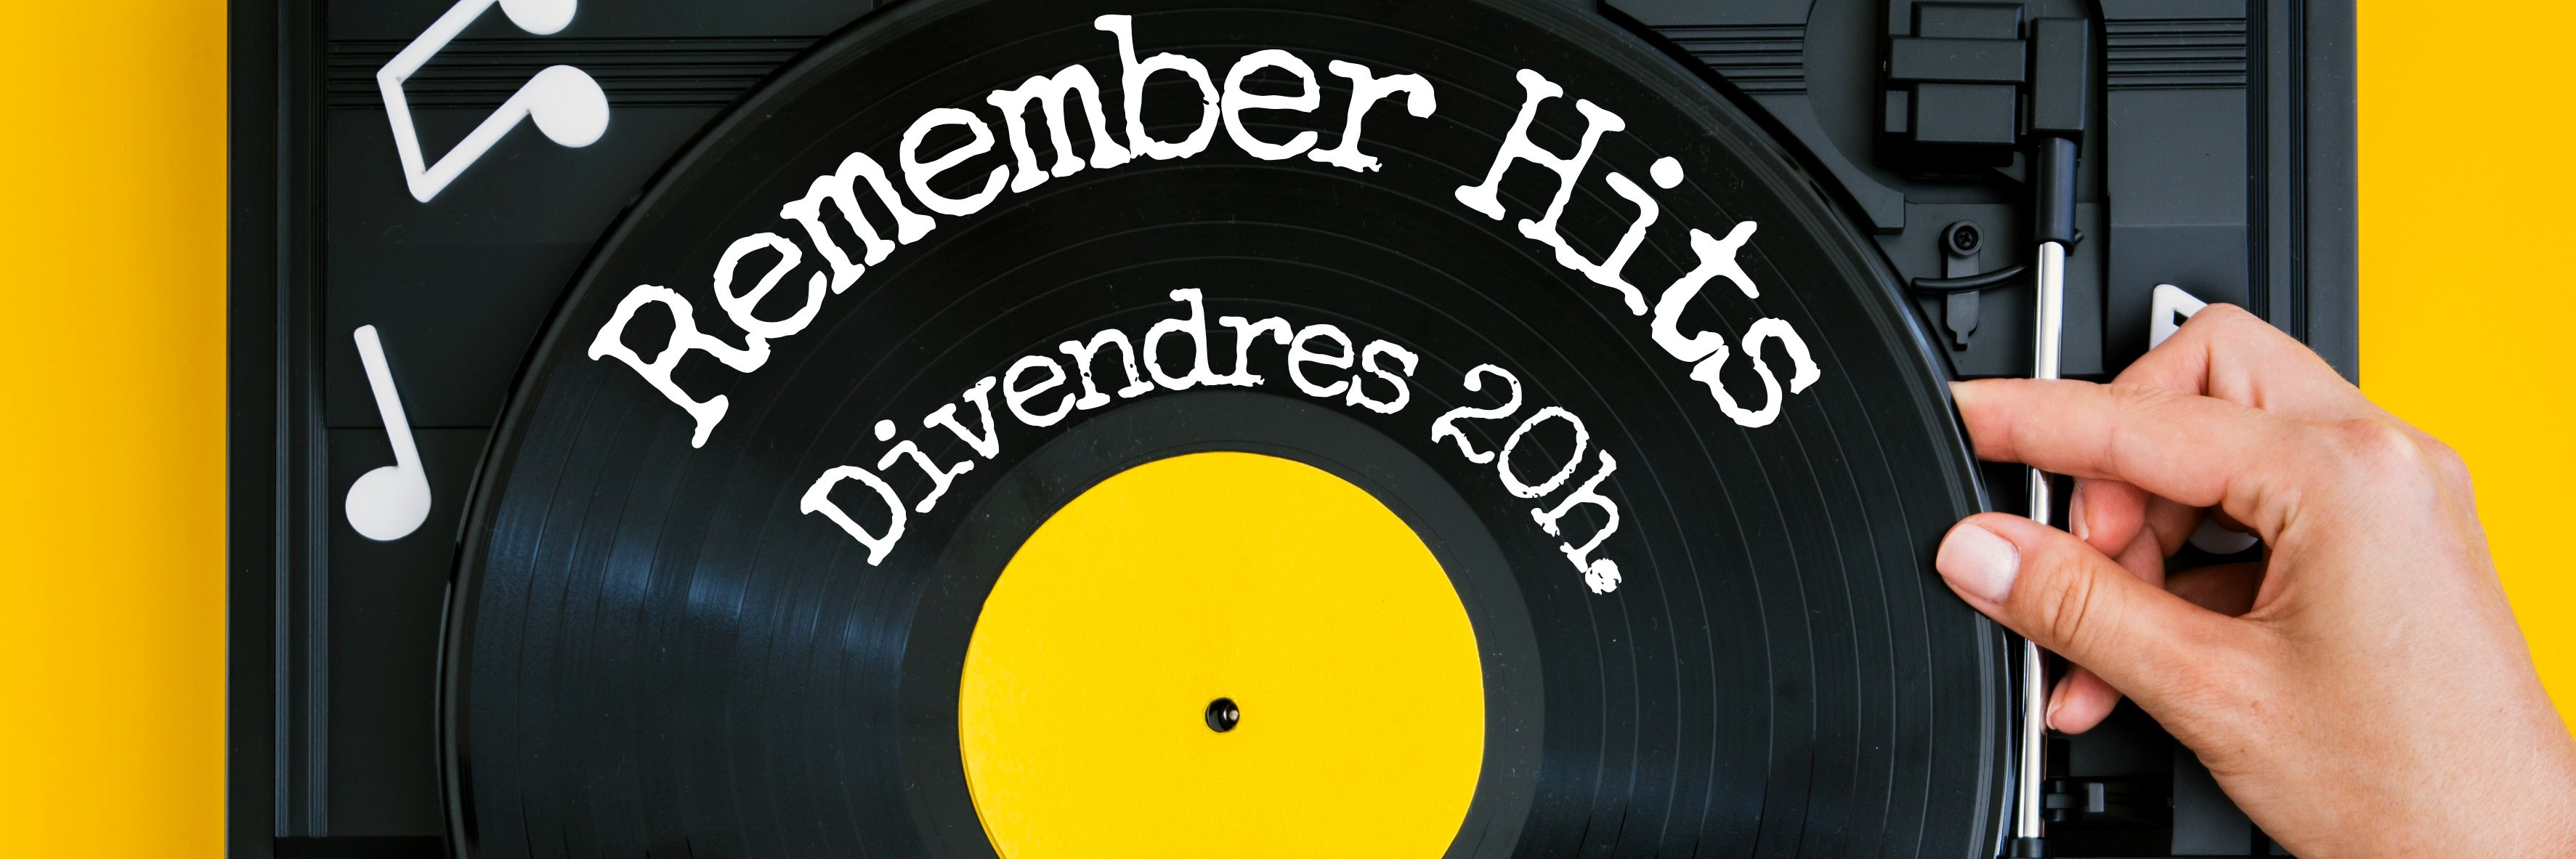 remember-hits-la-millor-seleccio-musical